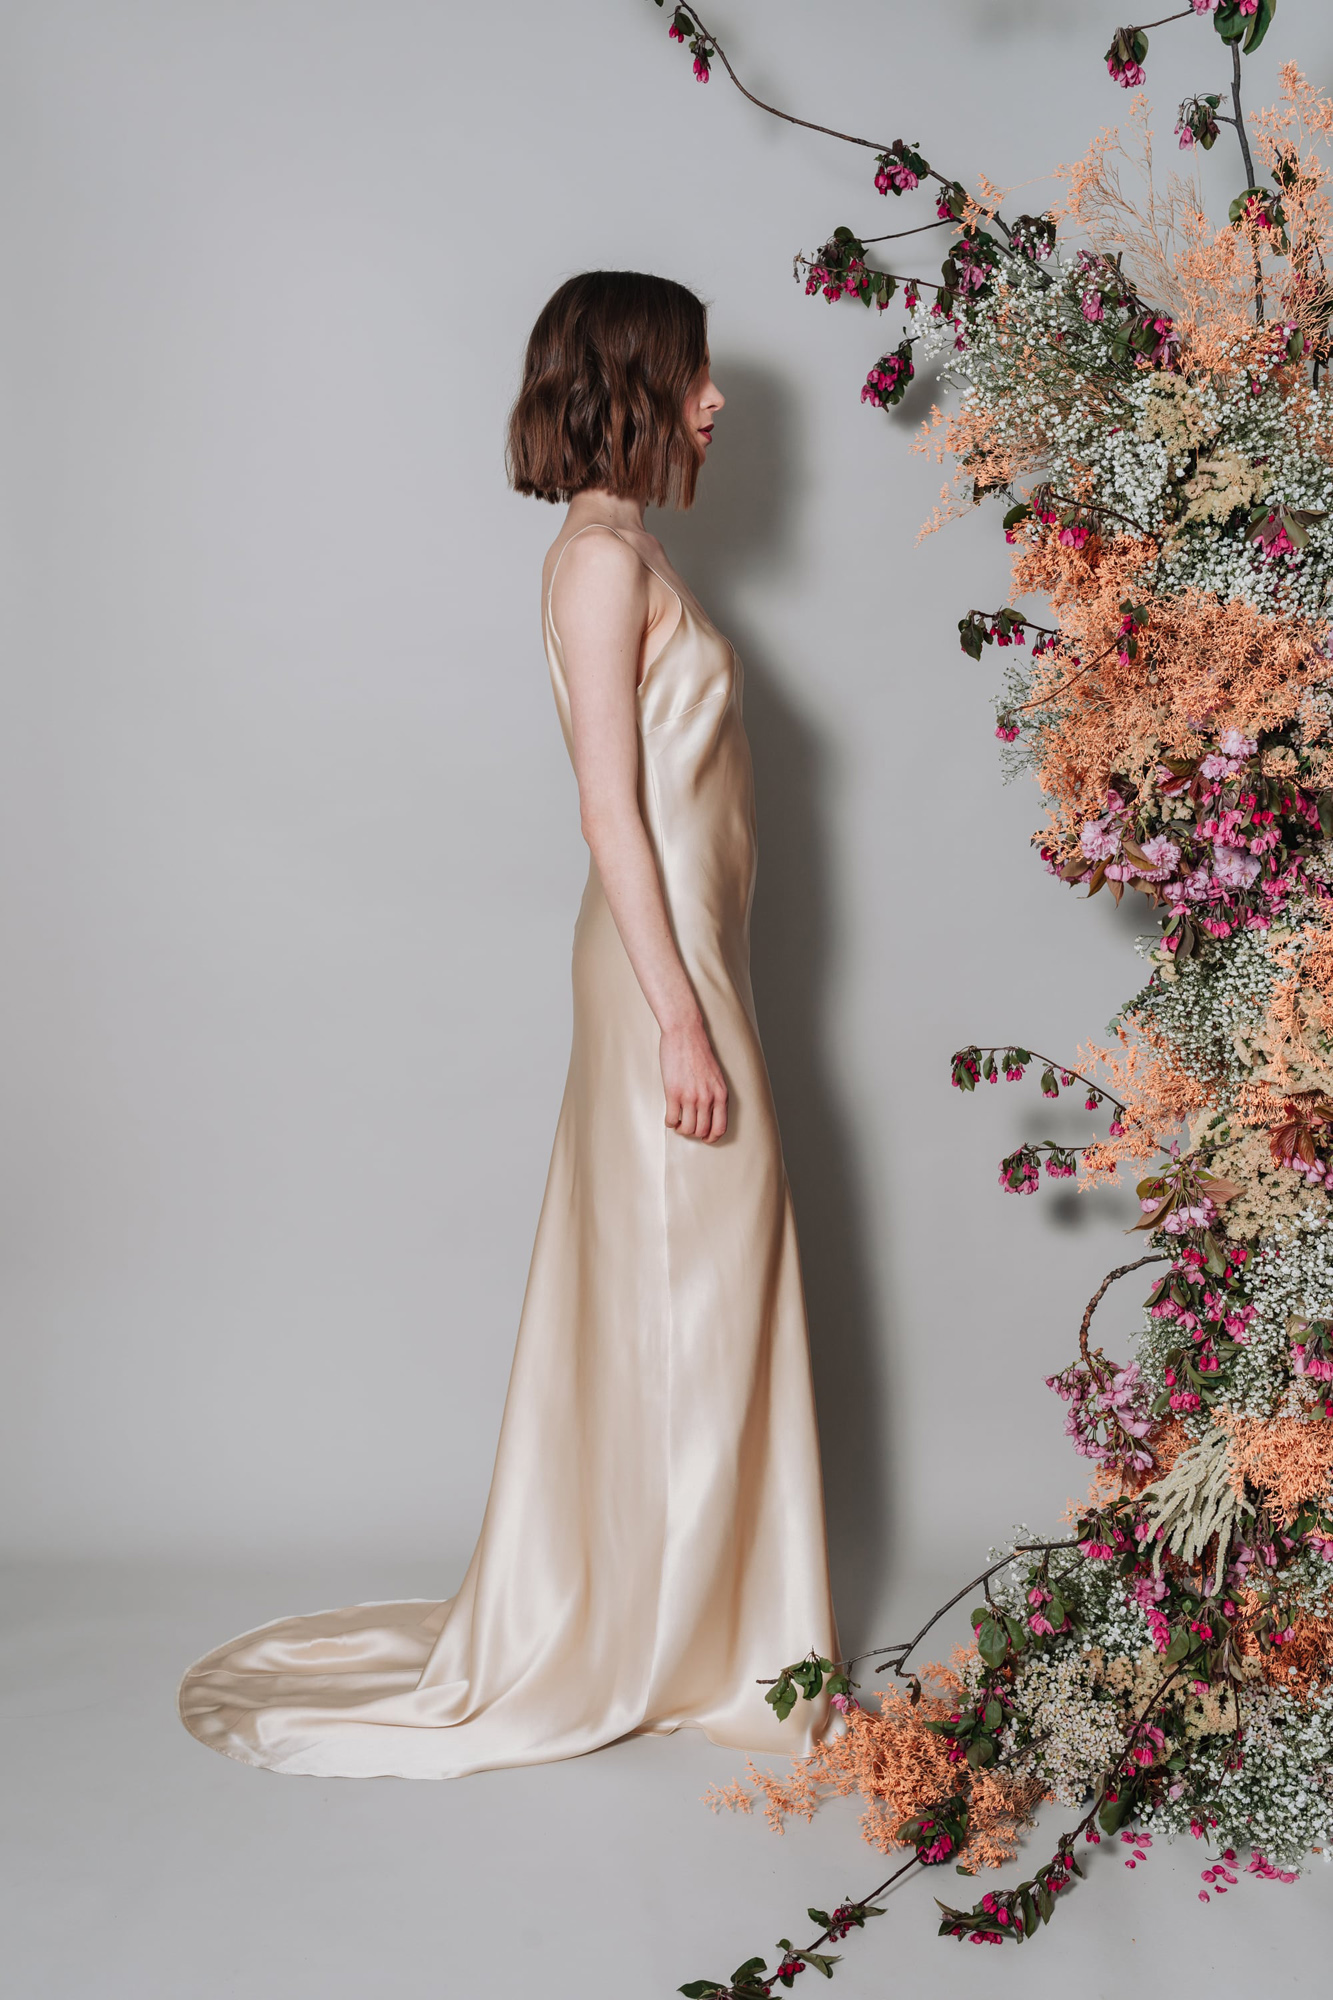 Kate-Beaumont-Sheffield-Thistle-Bridal-Separates-Two-Piece-Lace-Silk-Wedding-Gown-18.jpg